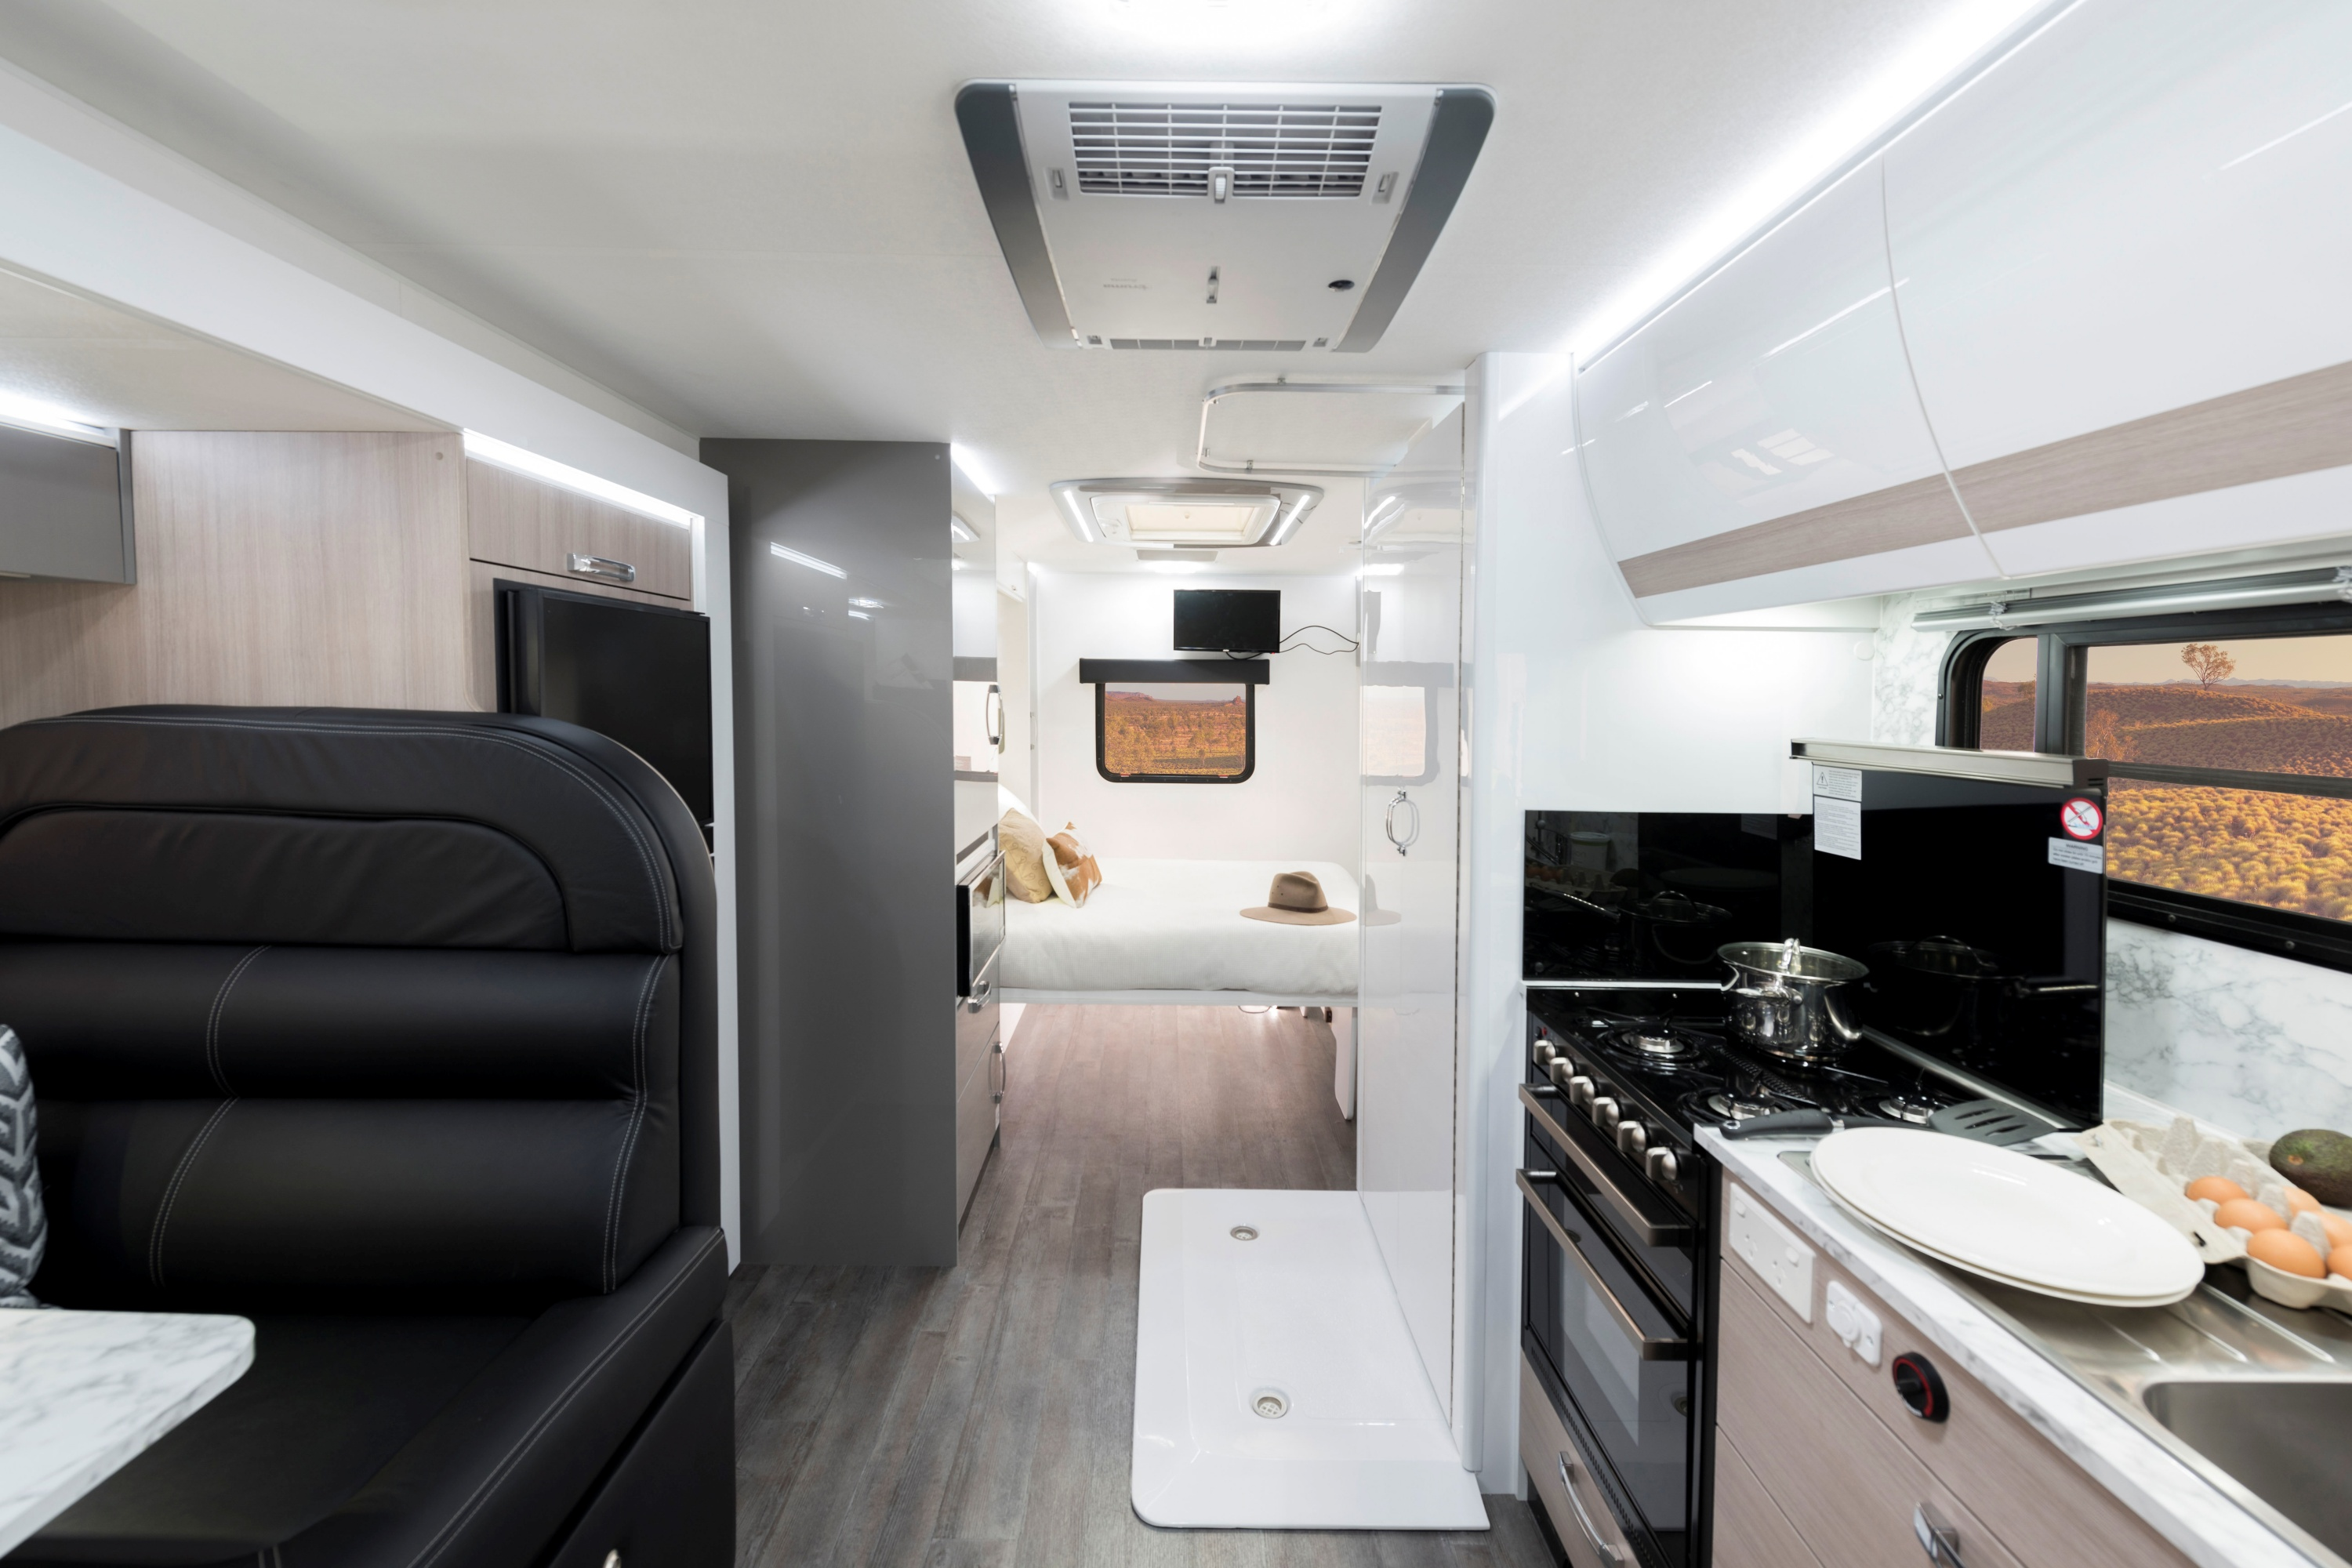 2019 Esperance WheelChair friendly galley